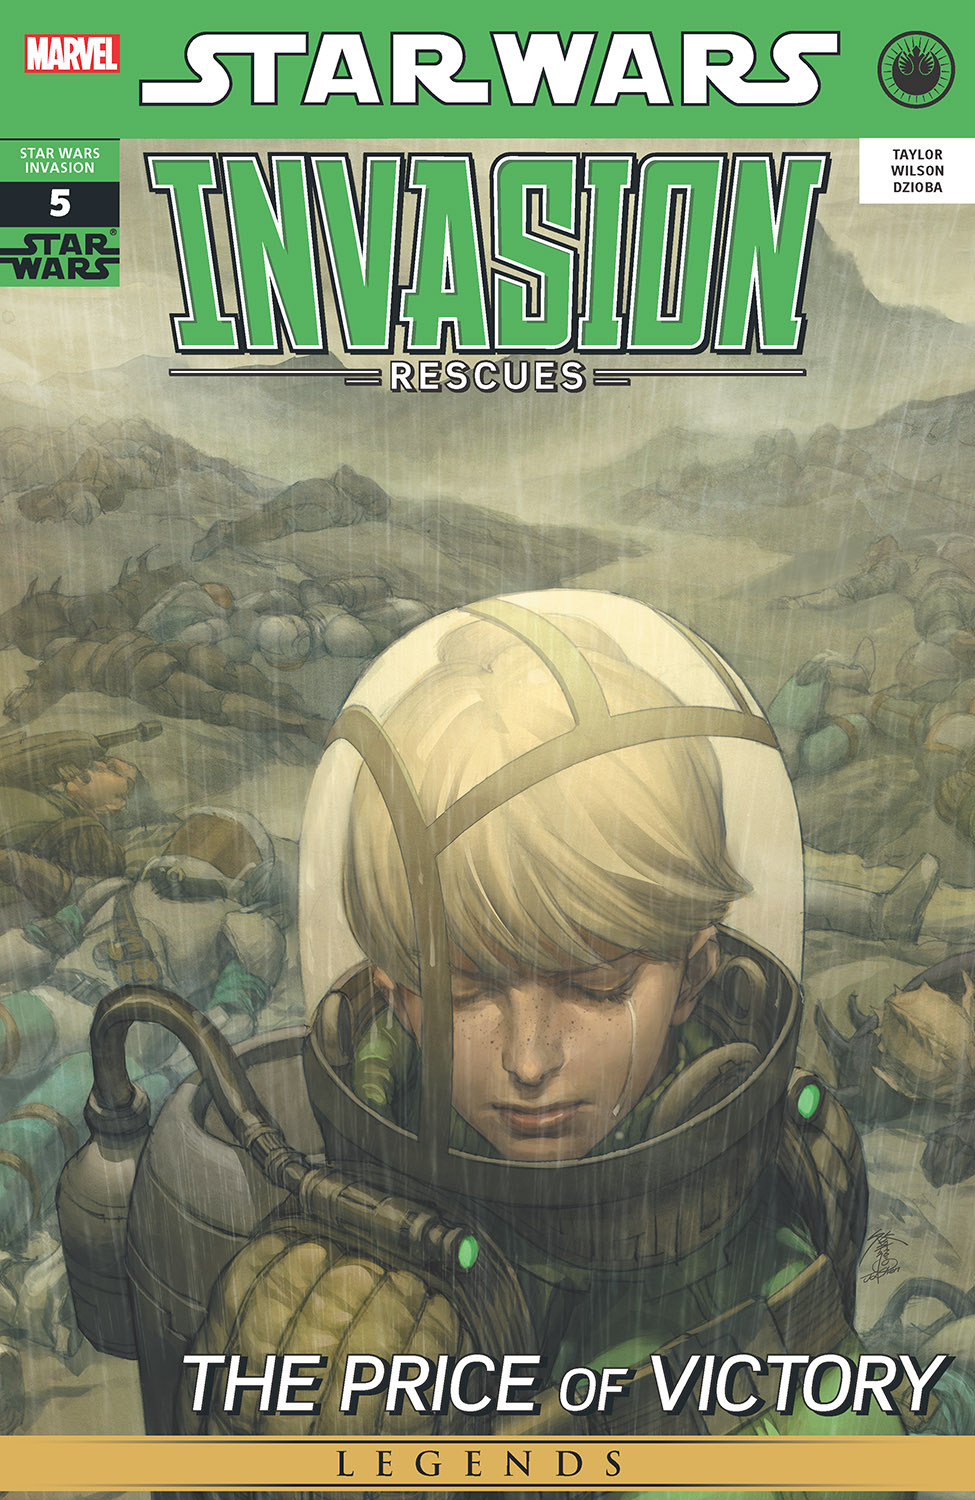 Star Wars: Invasion - Rescues (2010) #5